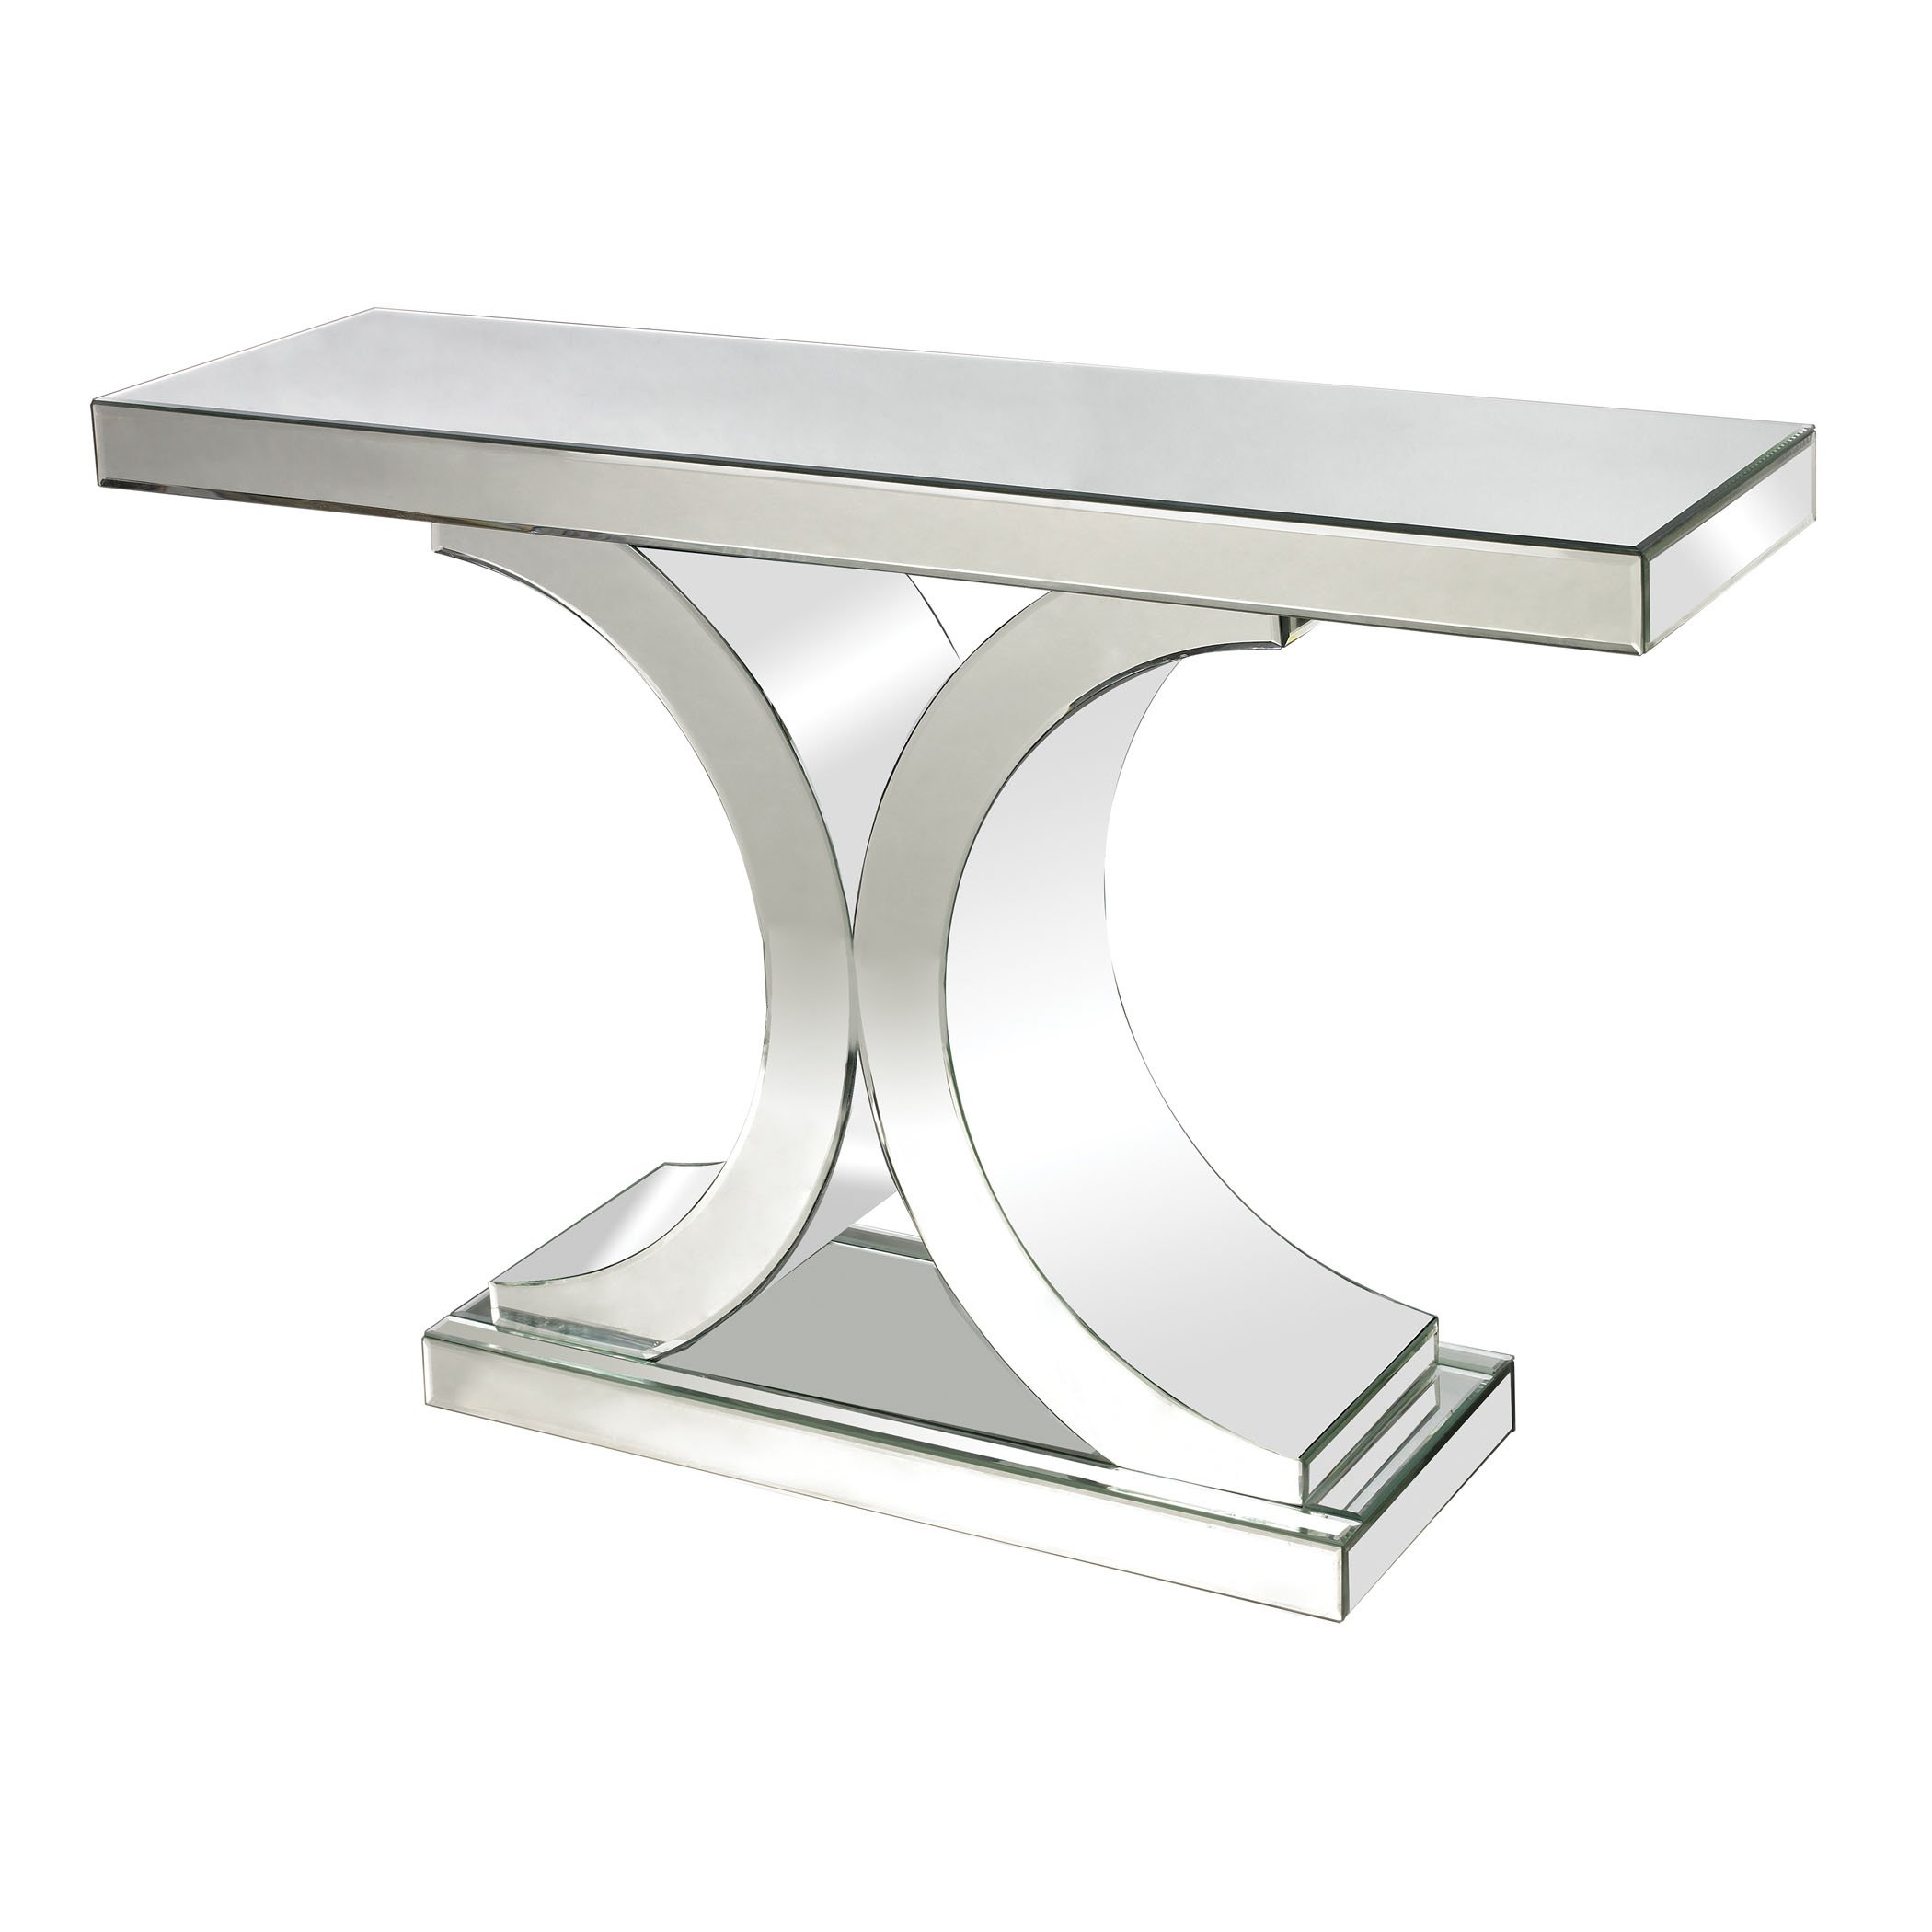 Dimond Home 114172 Mirrored Console Table, 46'' x 13'' x 30''